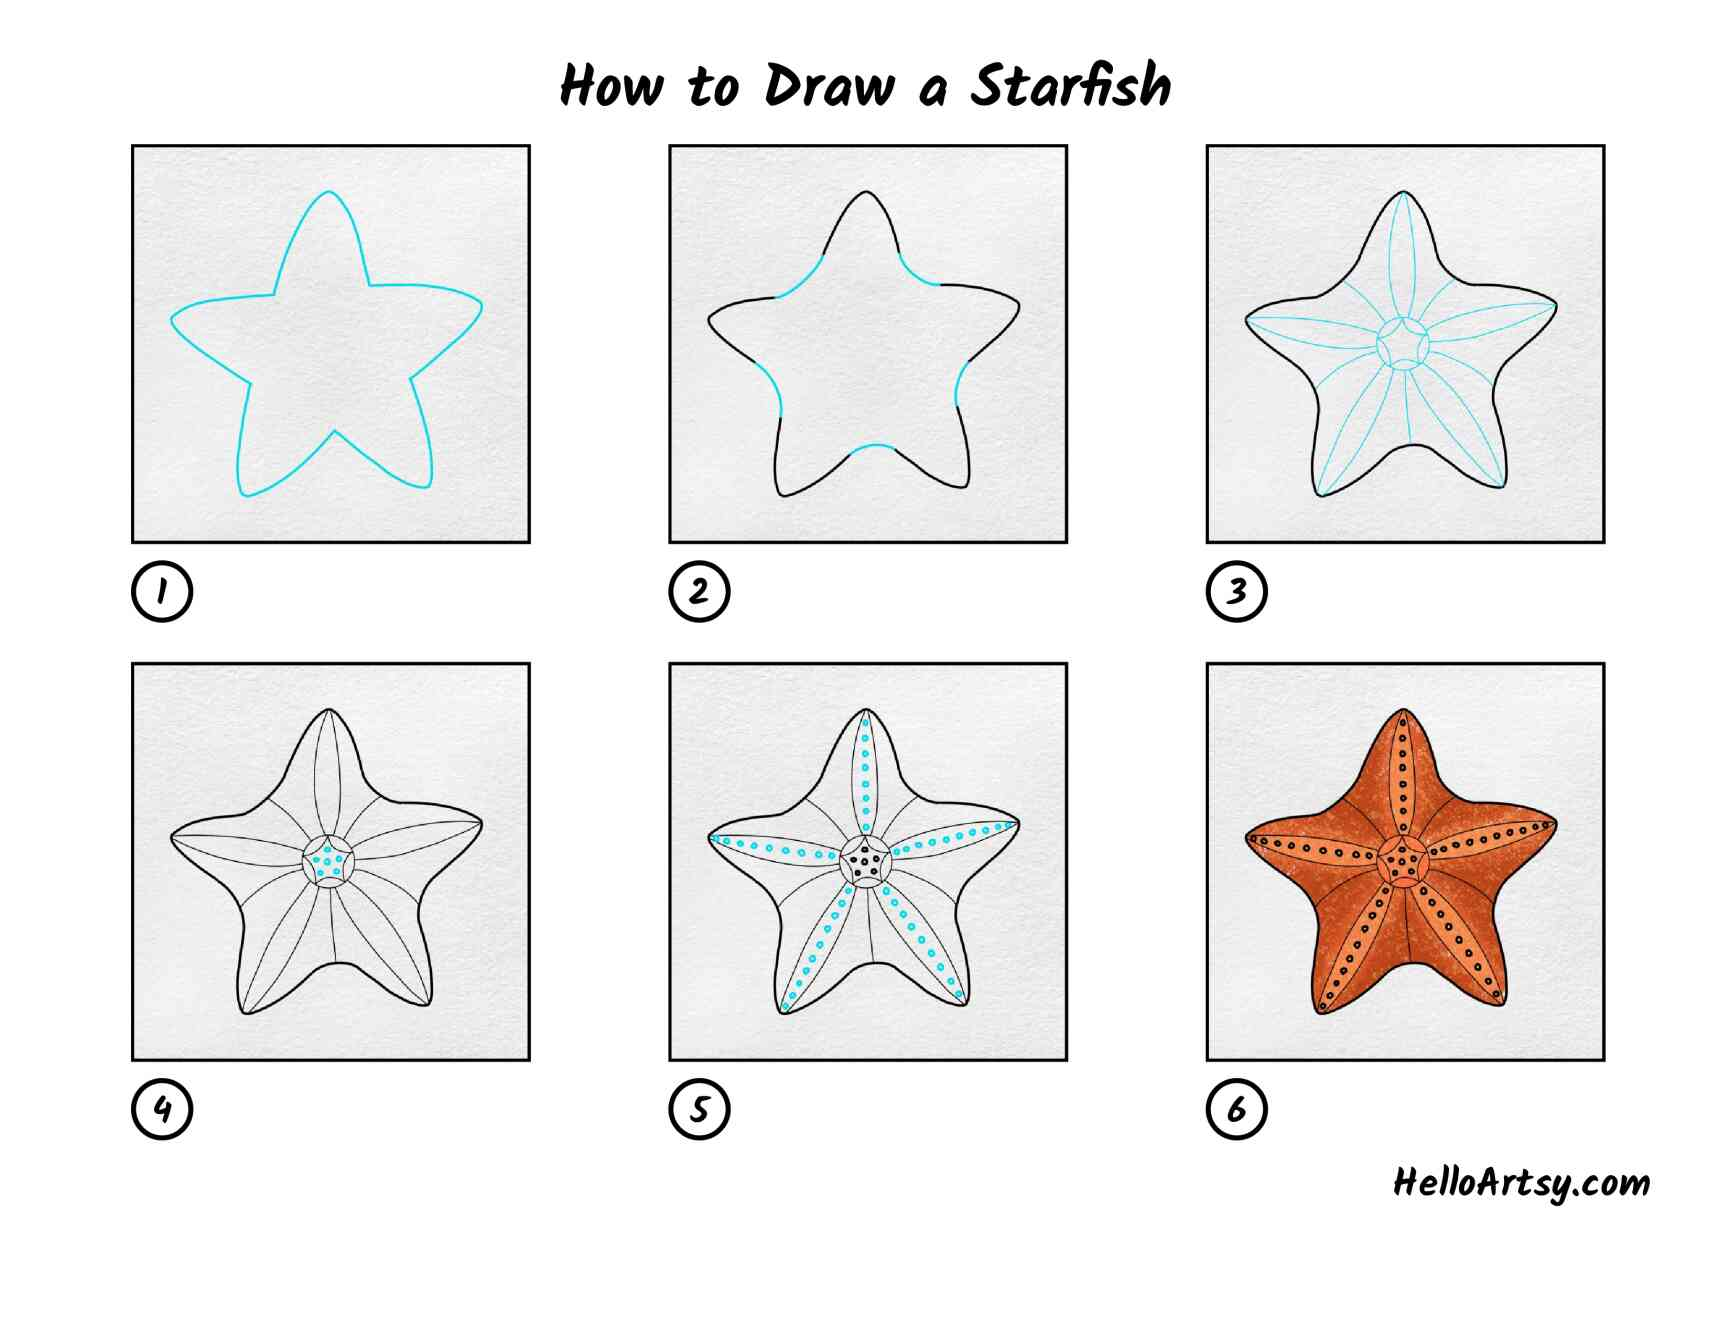 How To Draw A Starfish: All Steps